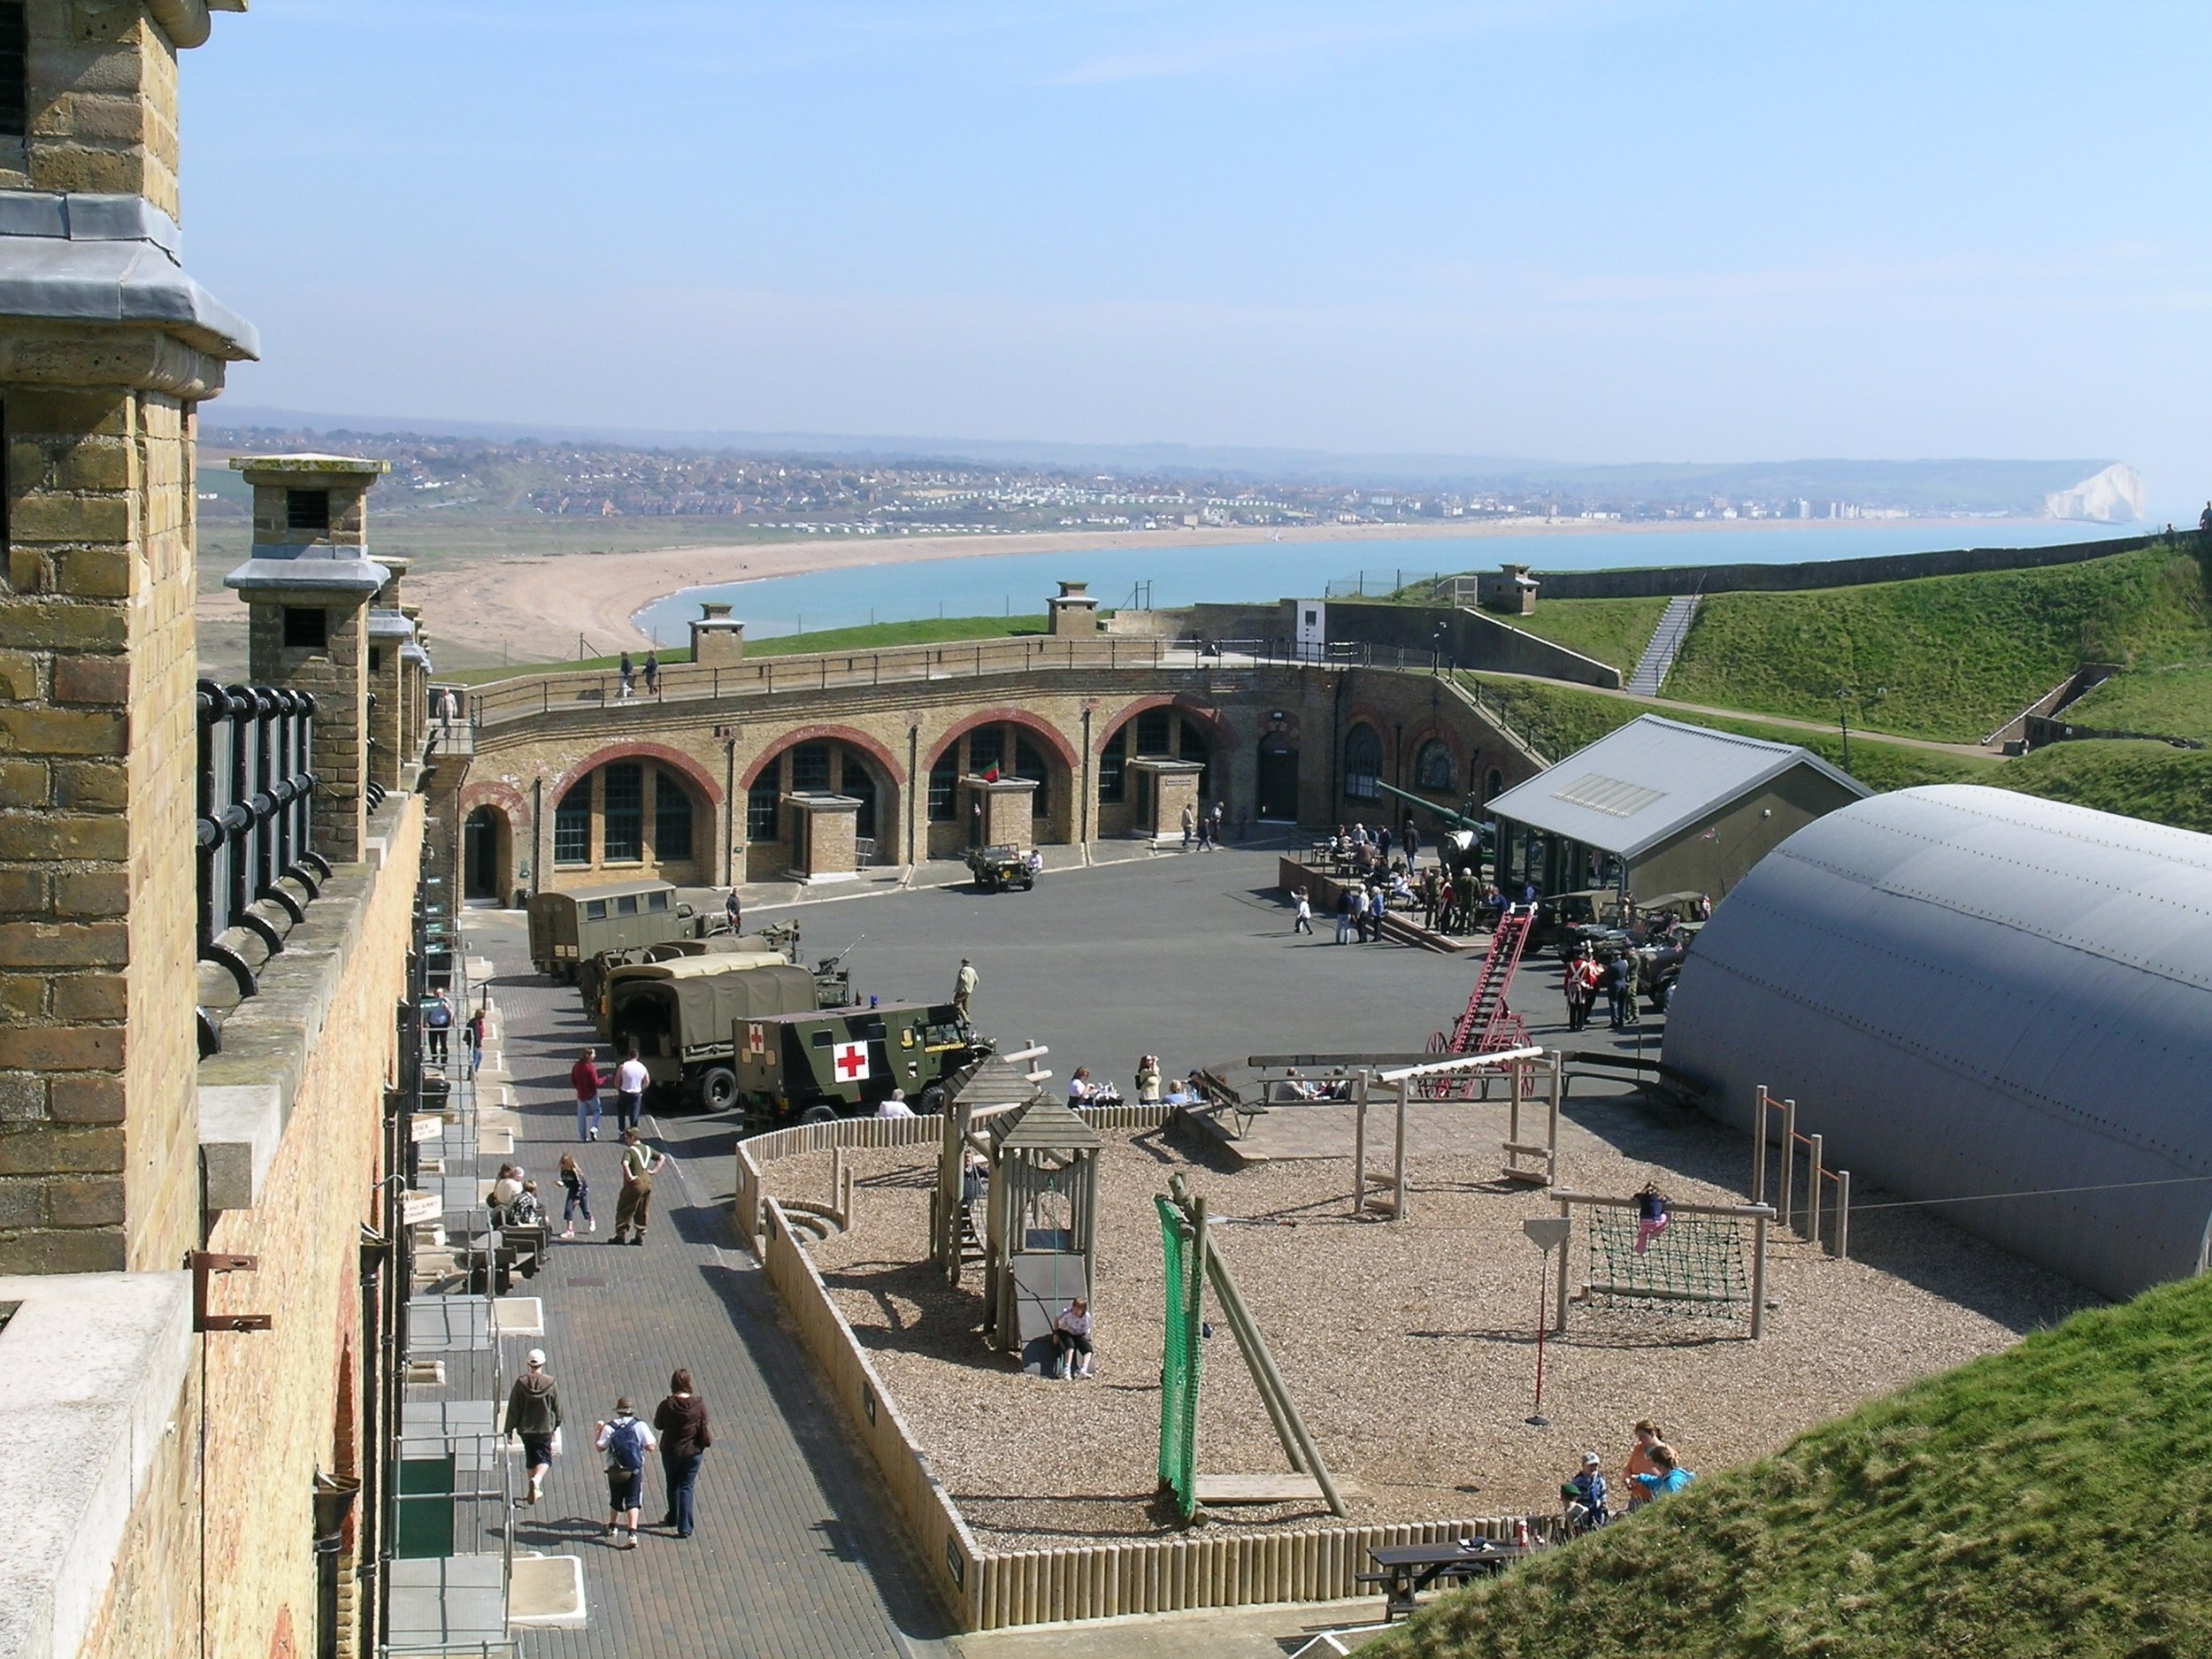 NEWHAVEN FORT - Newhaven